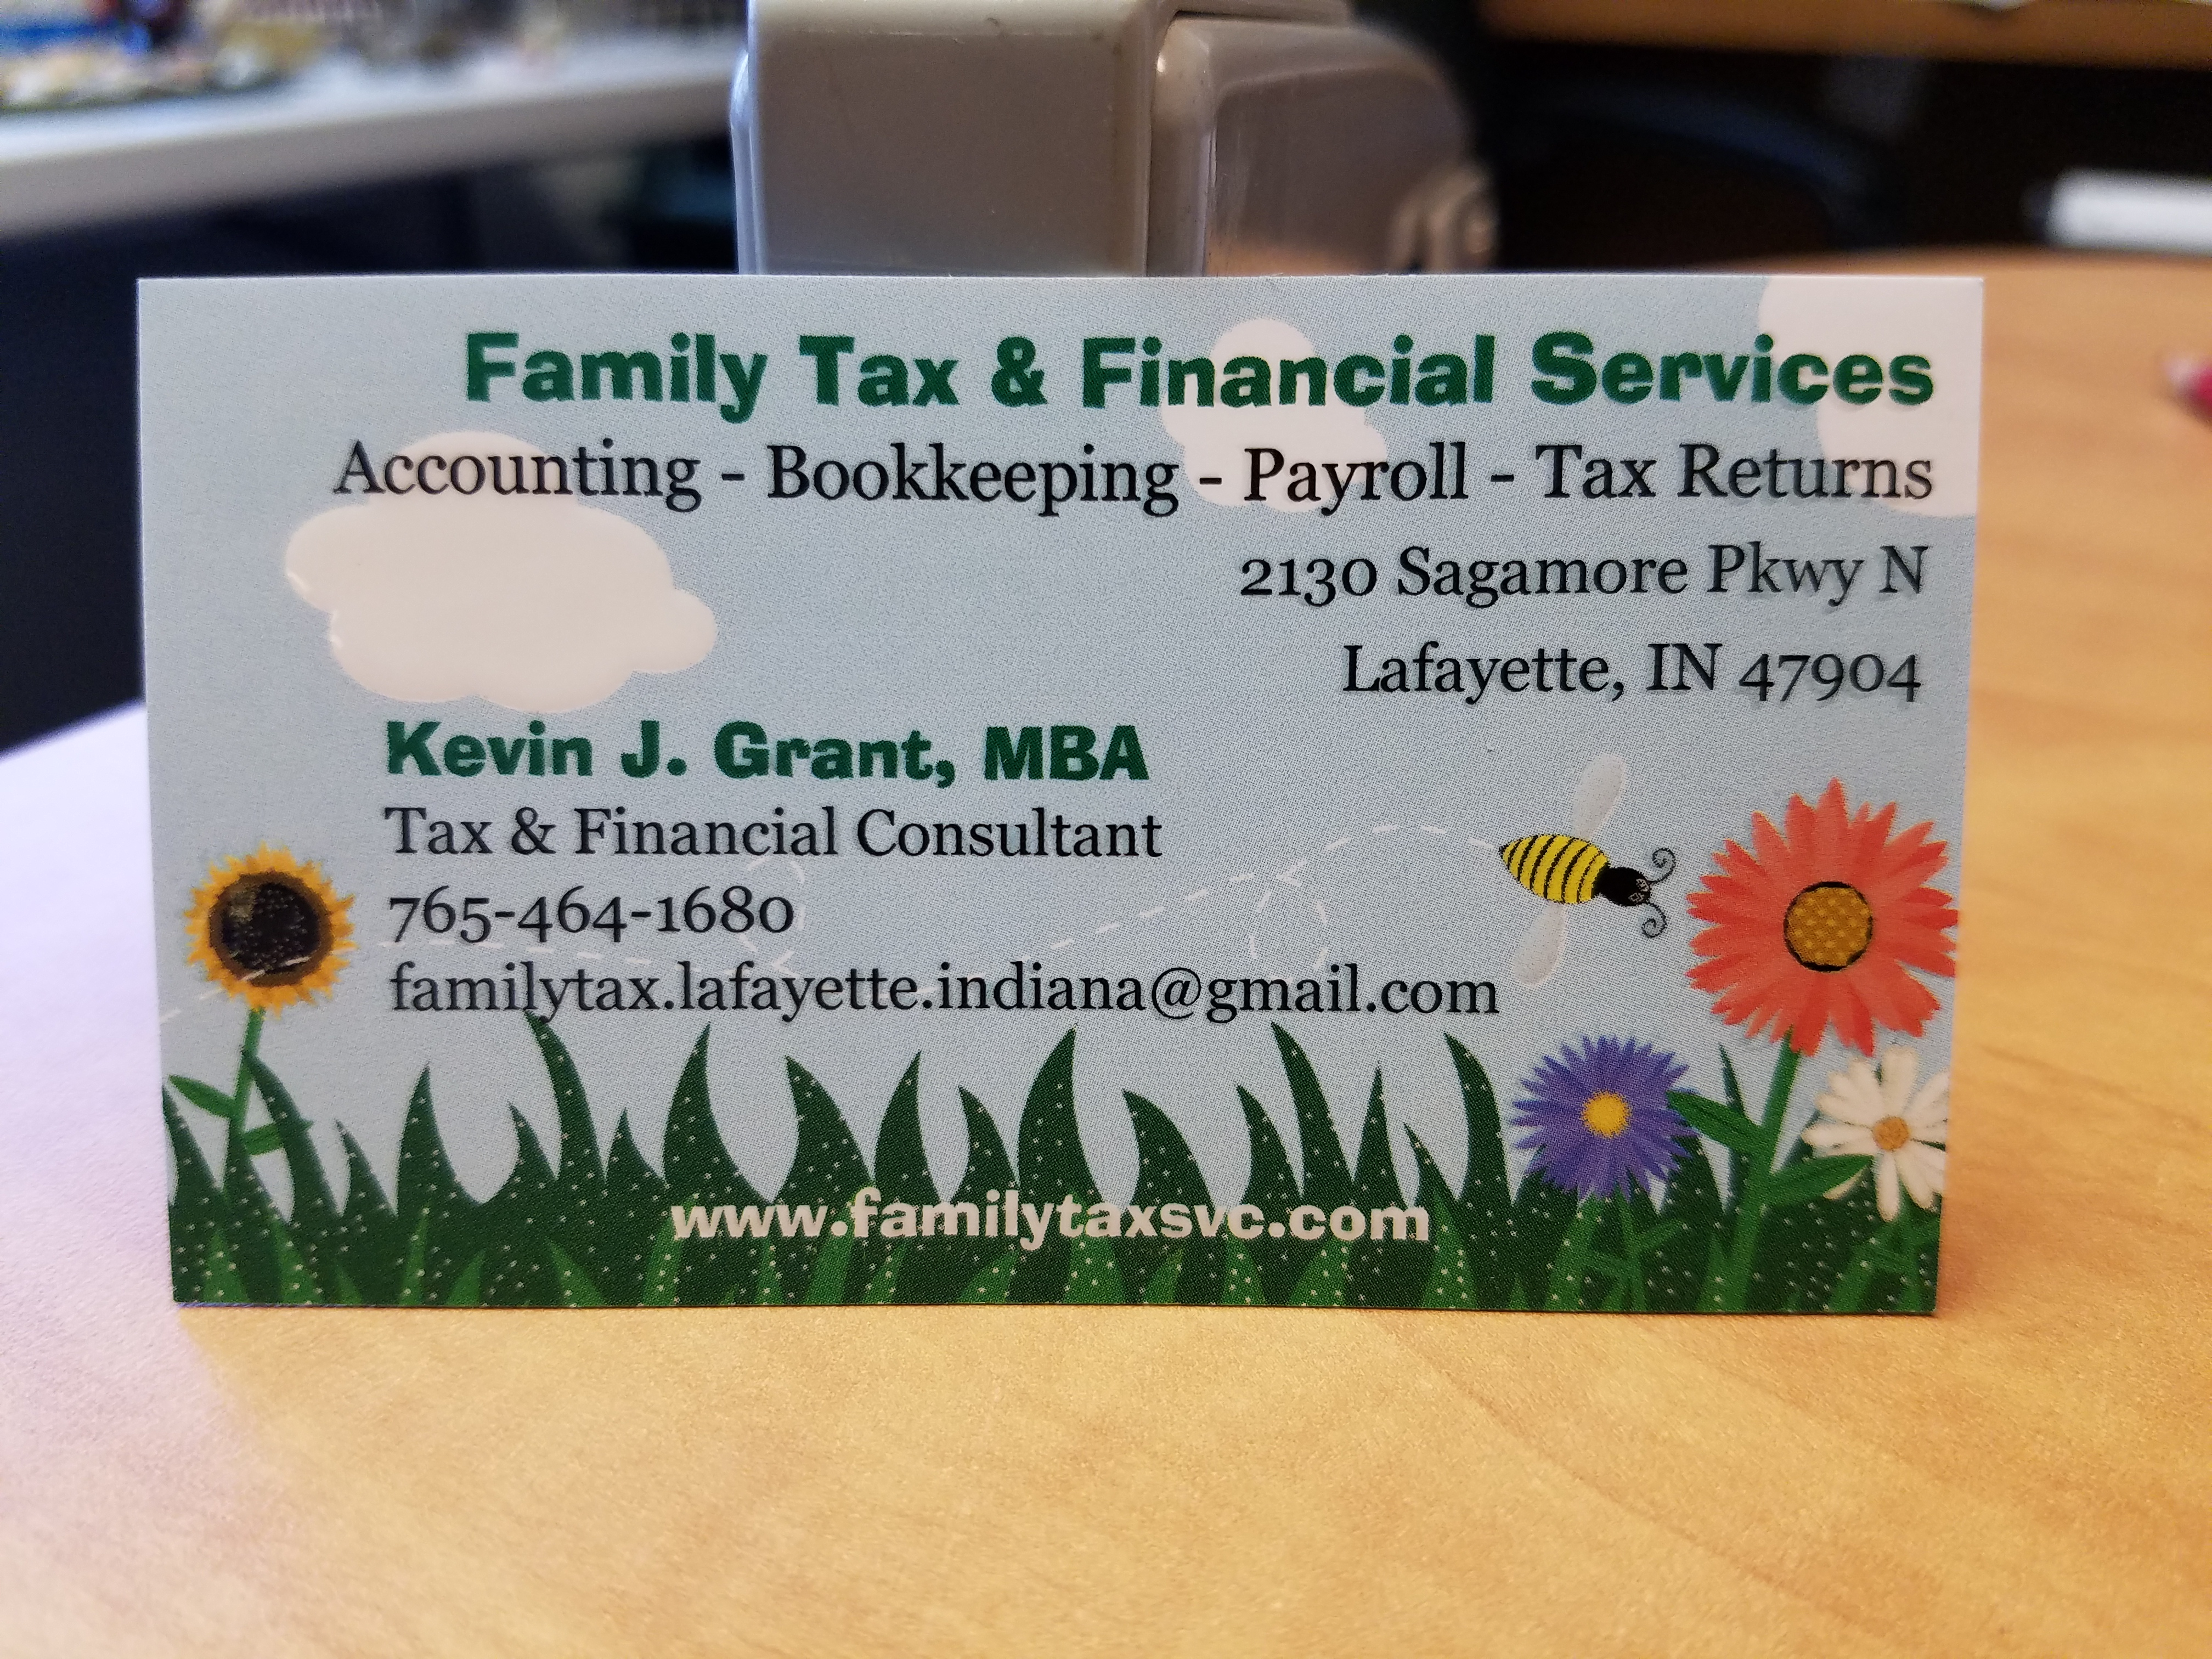 Family Tax & Financial Services image 1